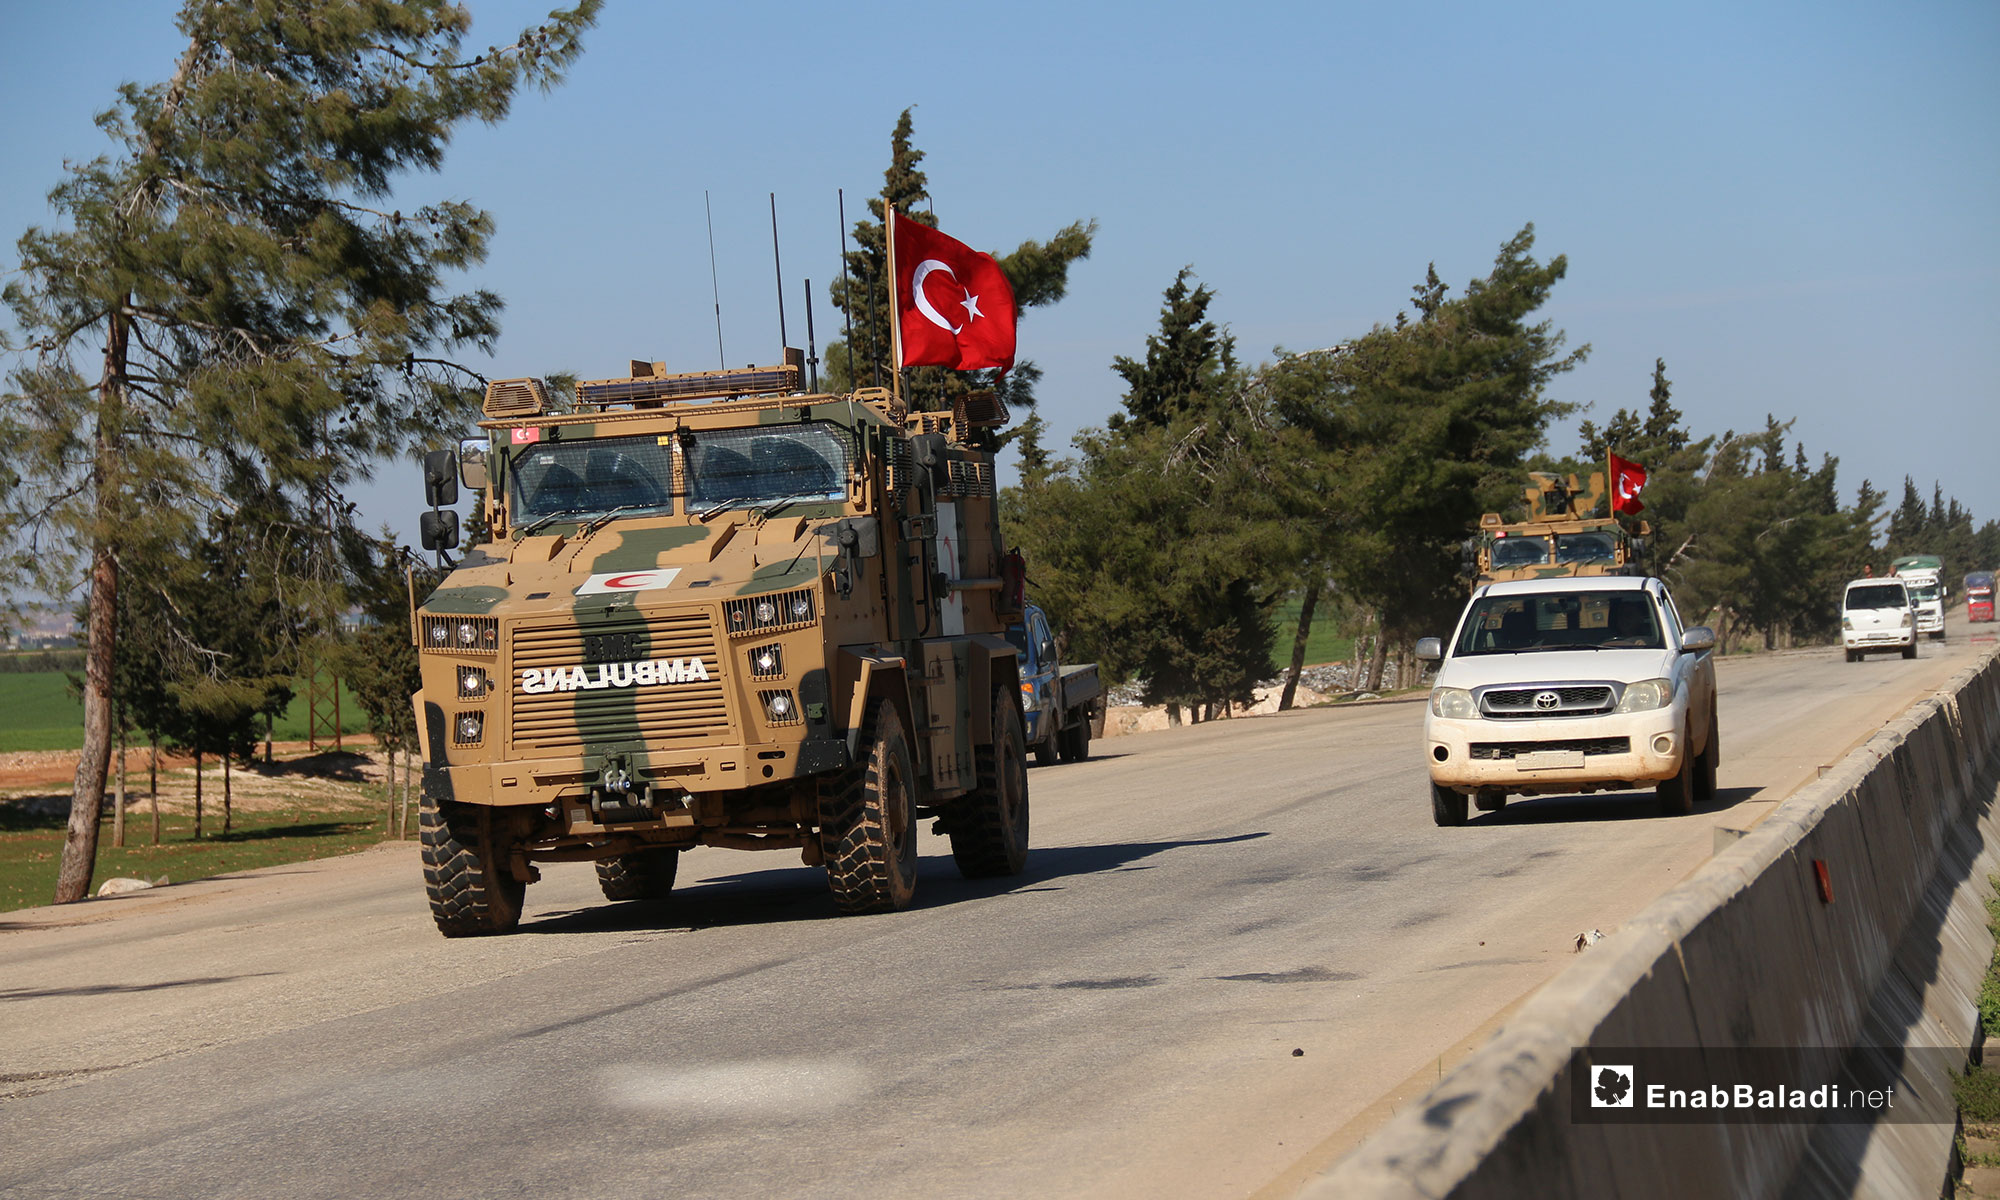 A Turkish patrol's passage through Idlib governorate, hours after it entered the demilitarized zone under a Russian deal – March 8, 2019 (Enab Baladi)